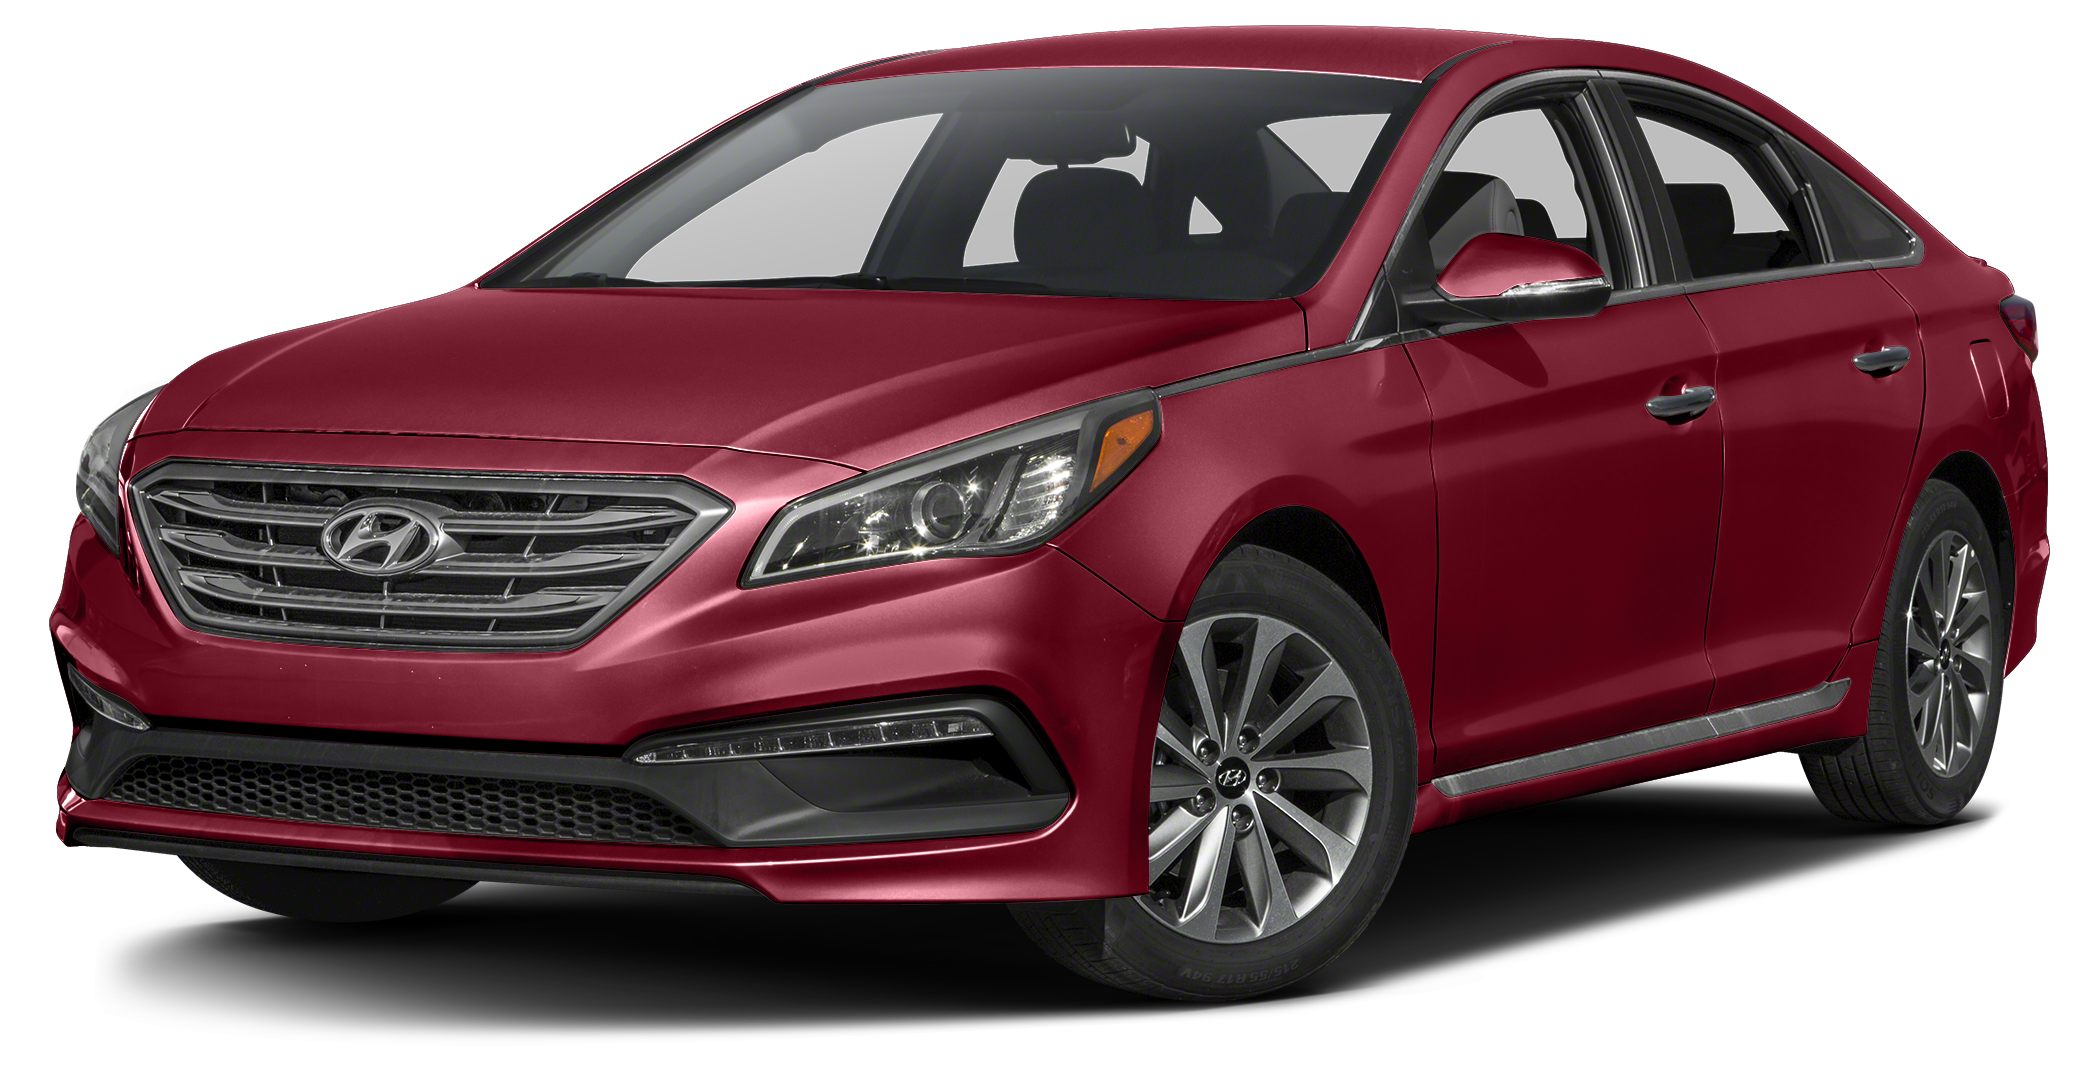 2015 Hyundai Sonata Sport 2015 Hyundai Sonata Sport in Red and One Year Free Maintanence Car buyi